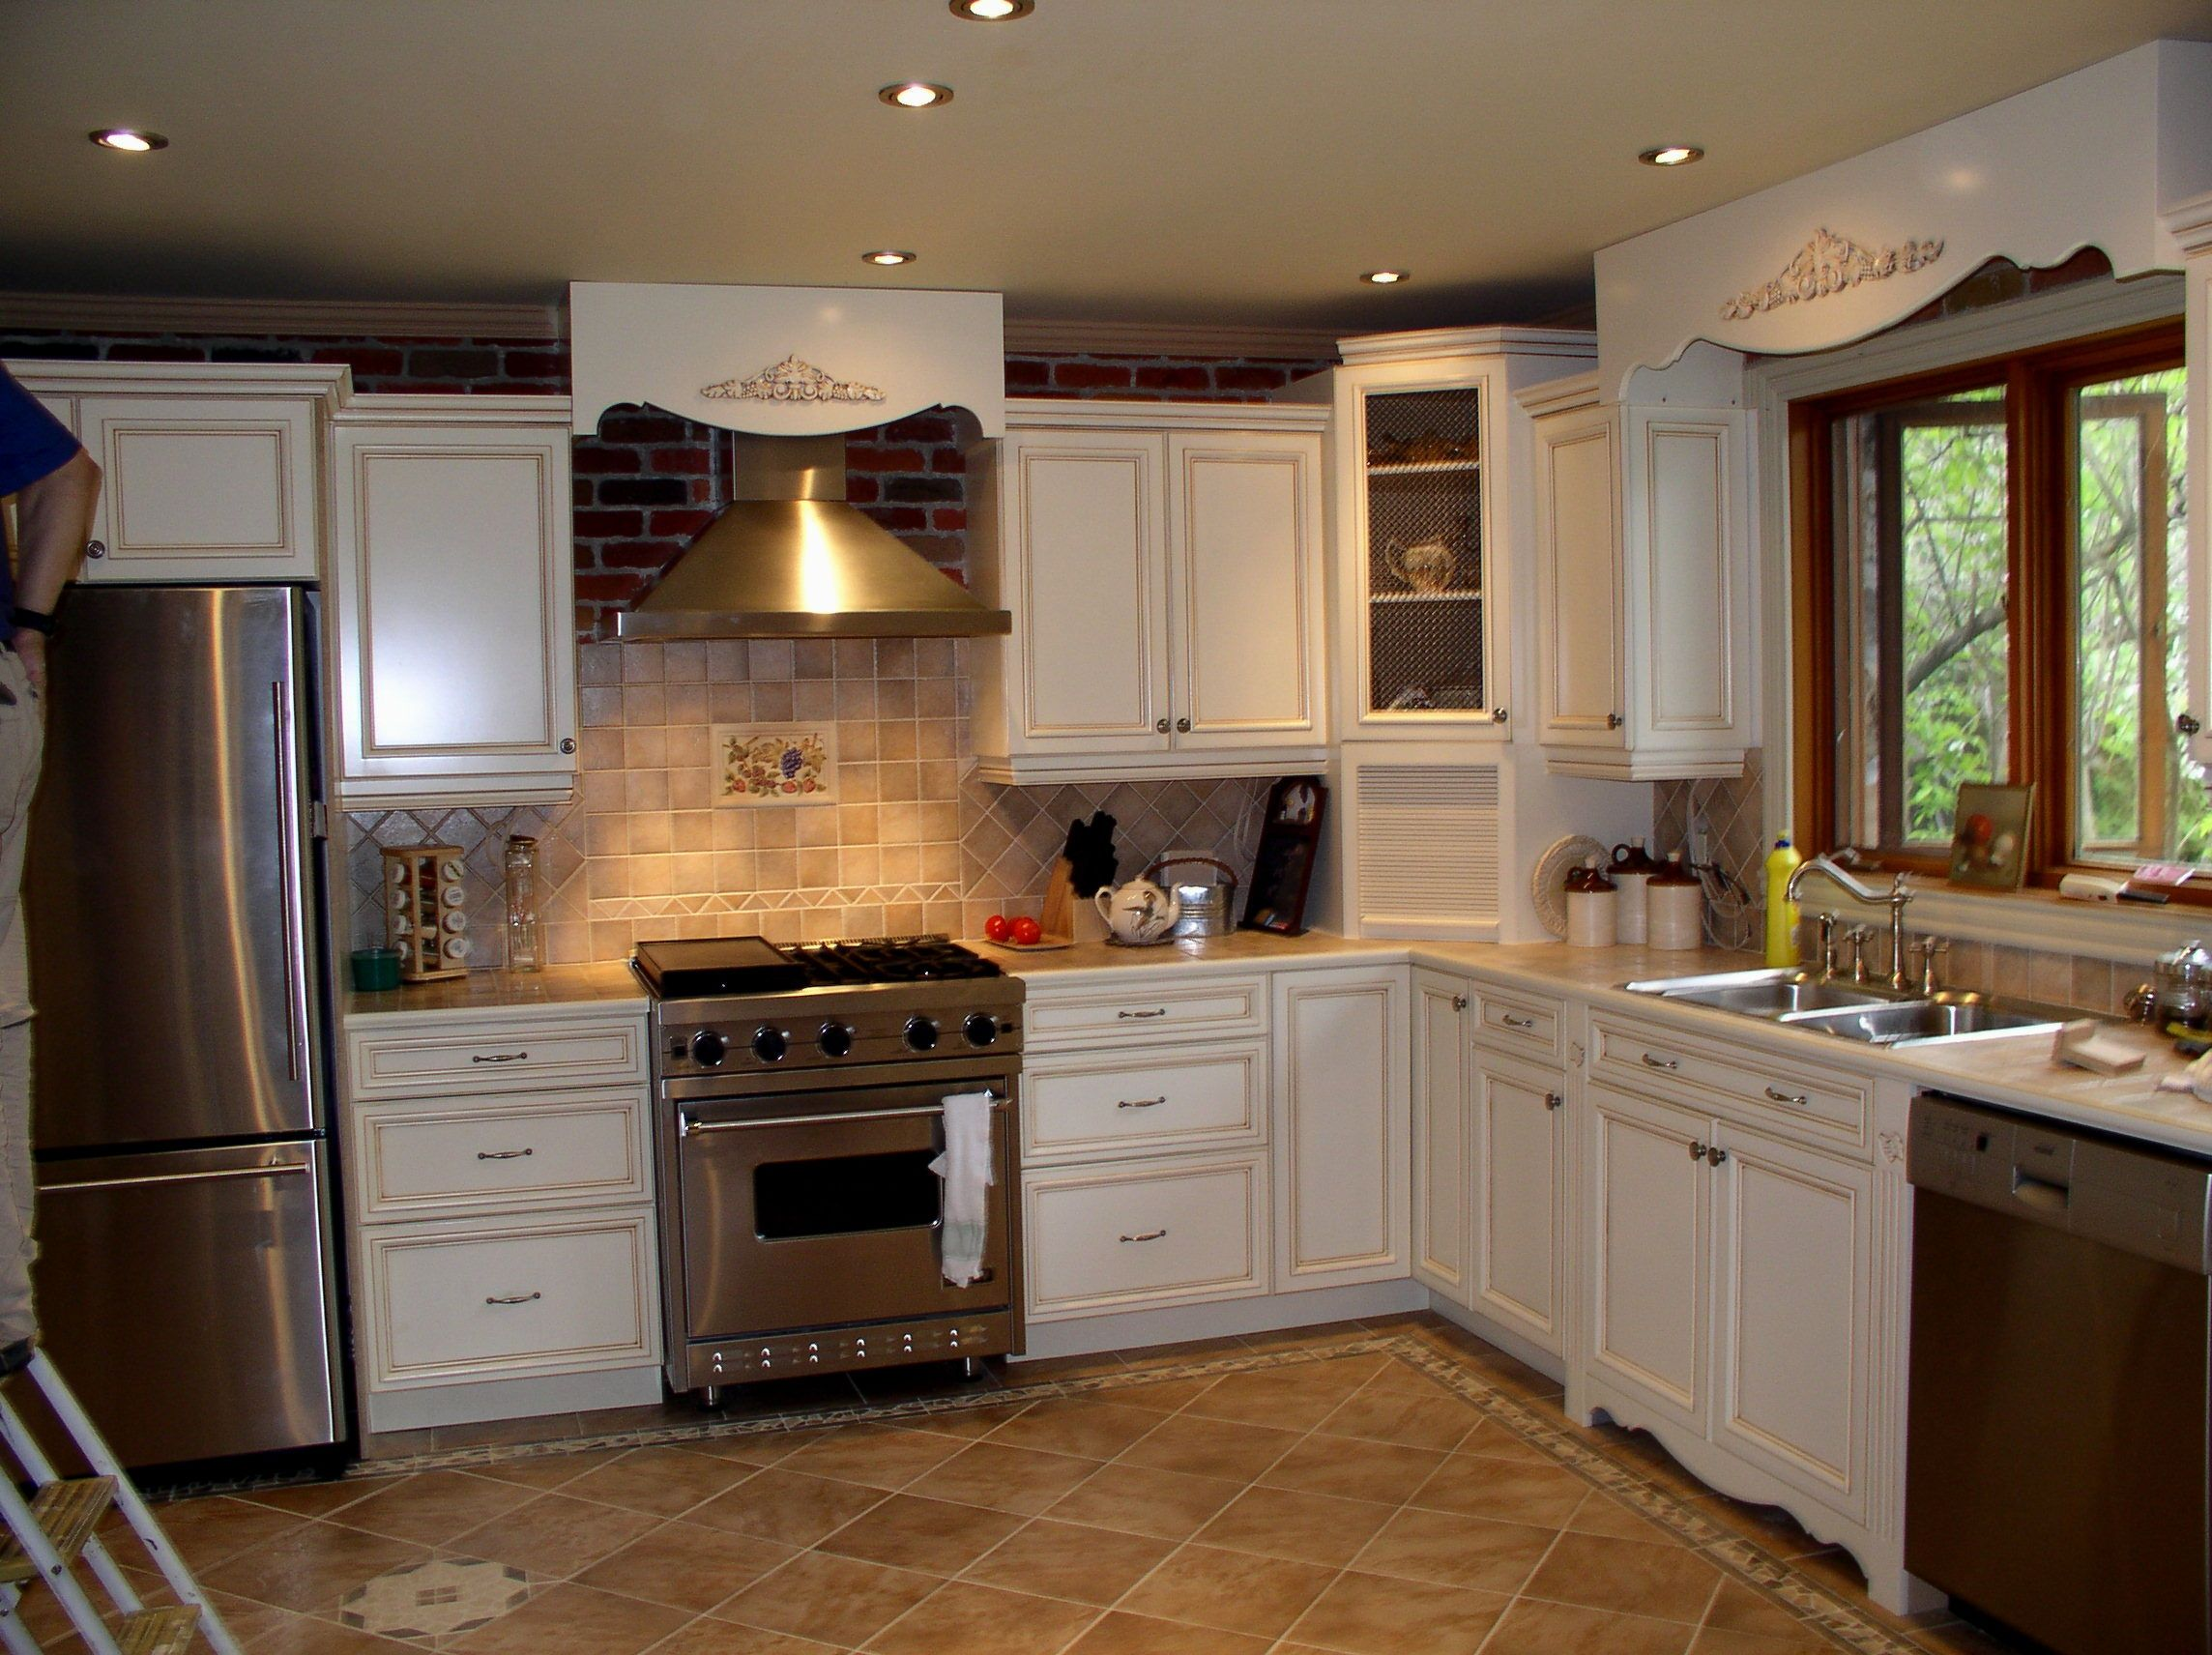 White Kitchen Cabinets Brown Tile Floor